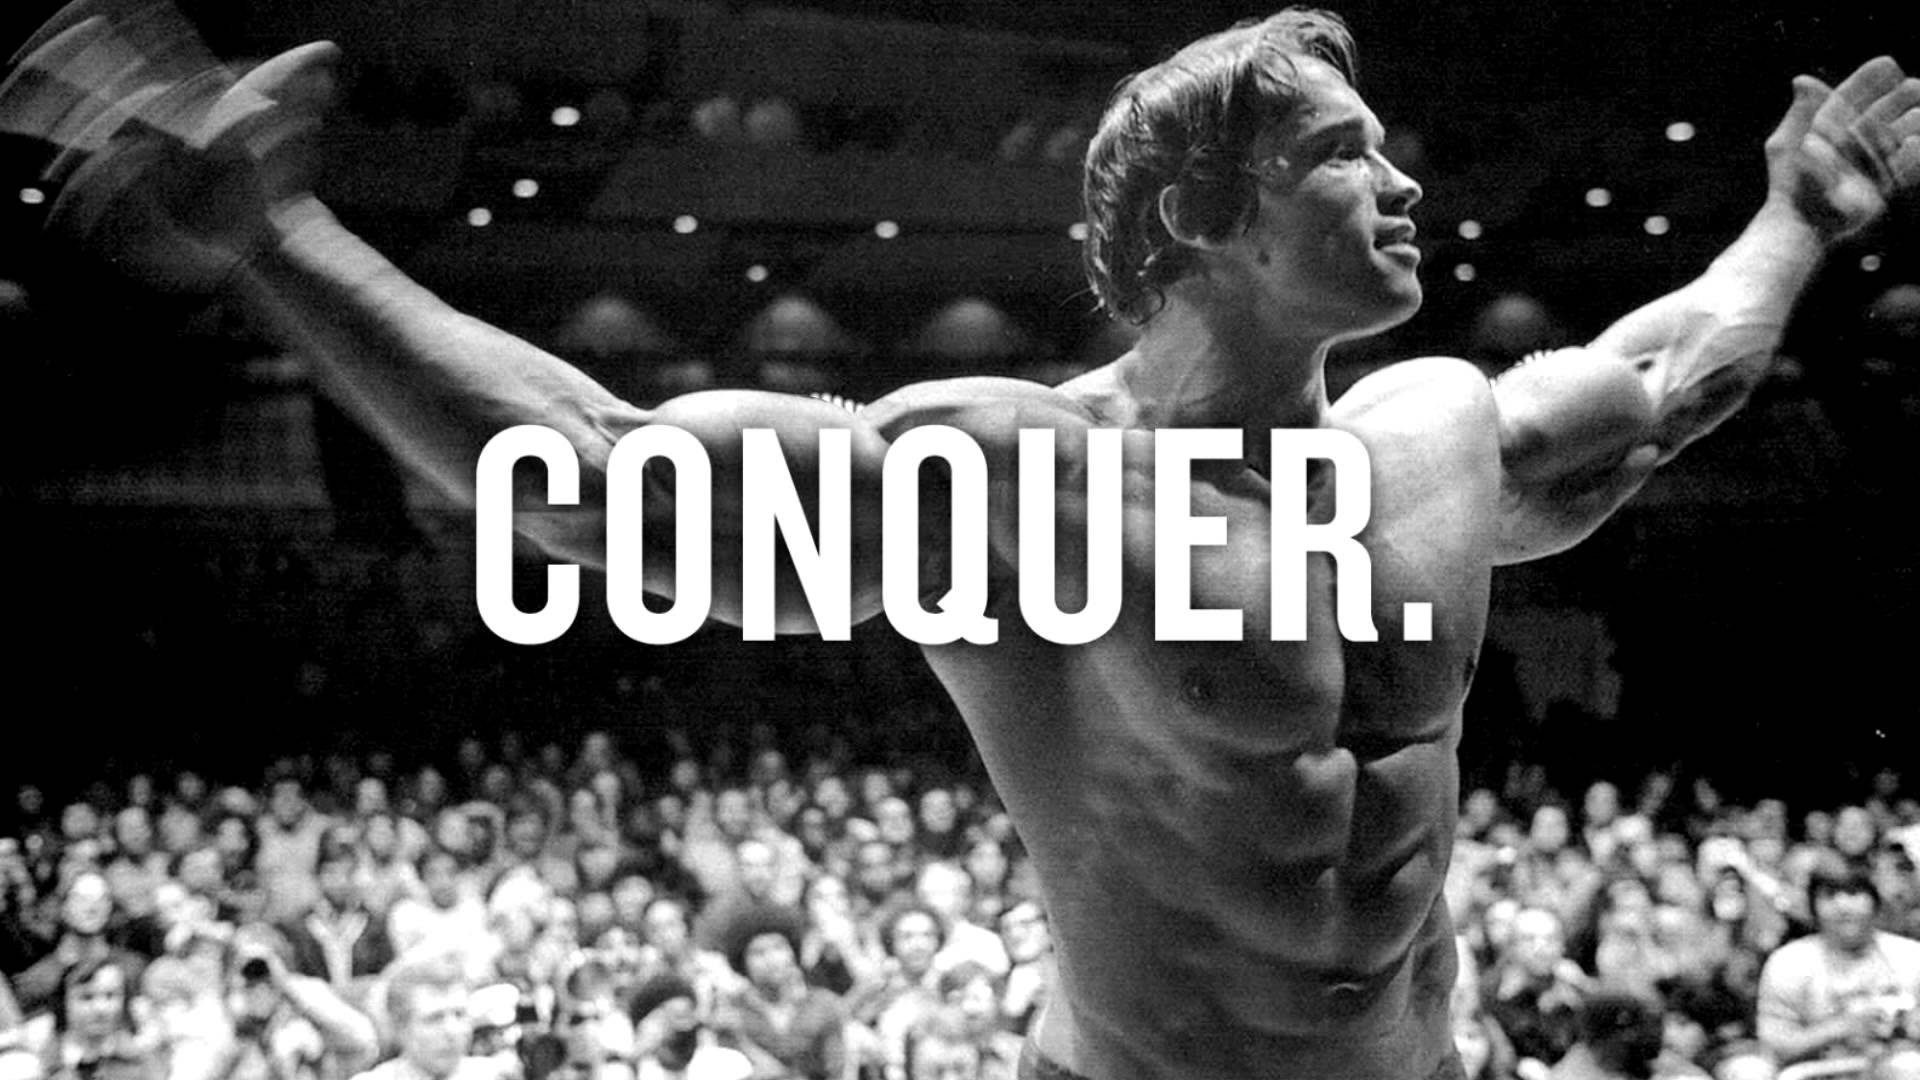 Best Aggressive Workout Motivation Music [+ Free Download Link] – YouTube